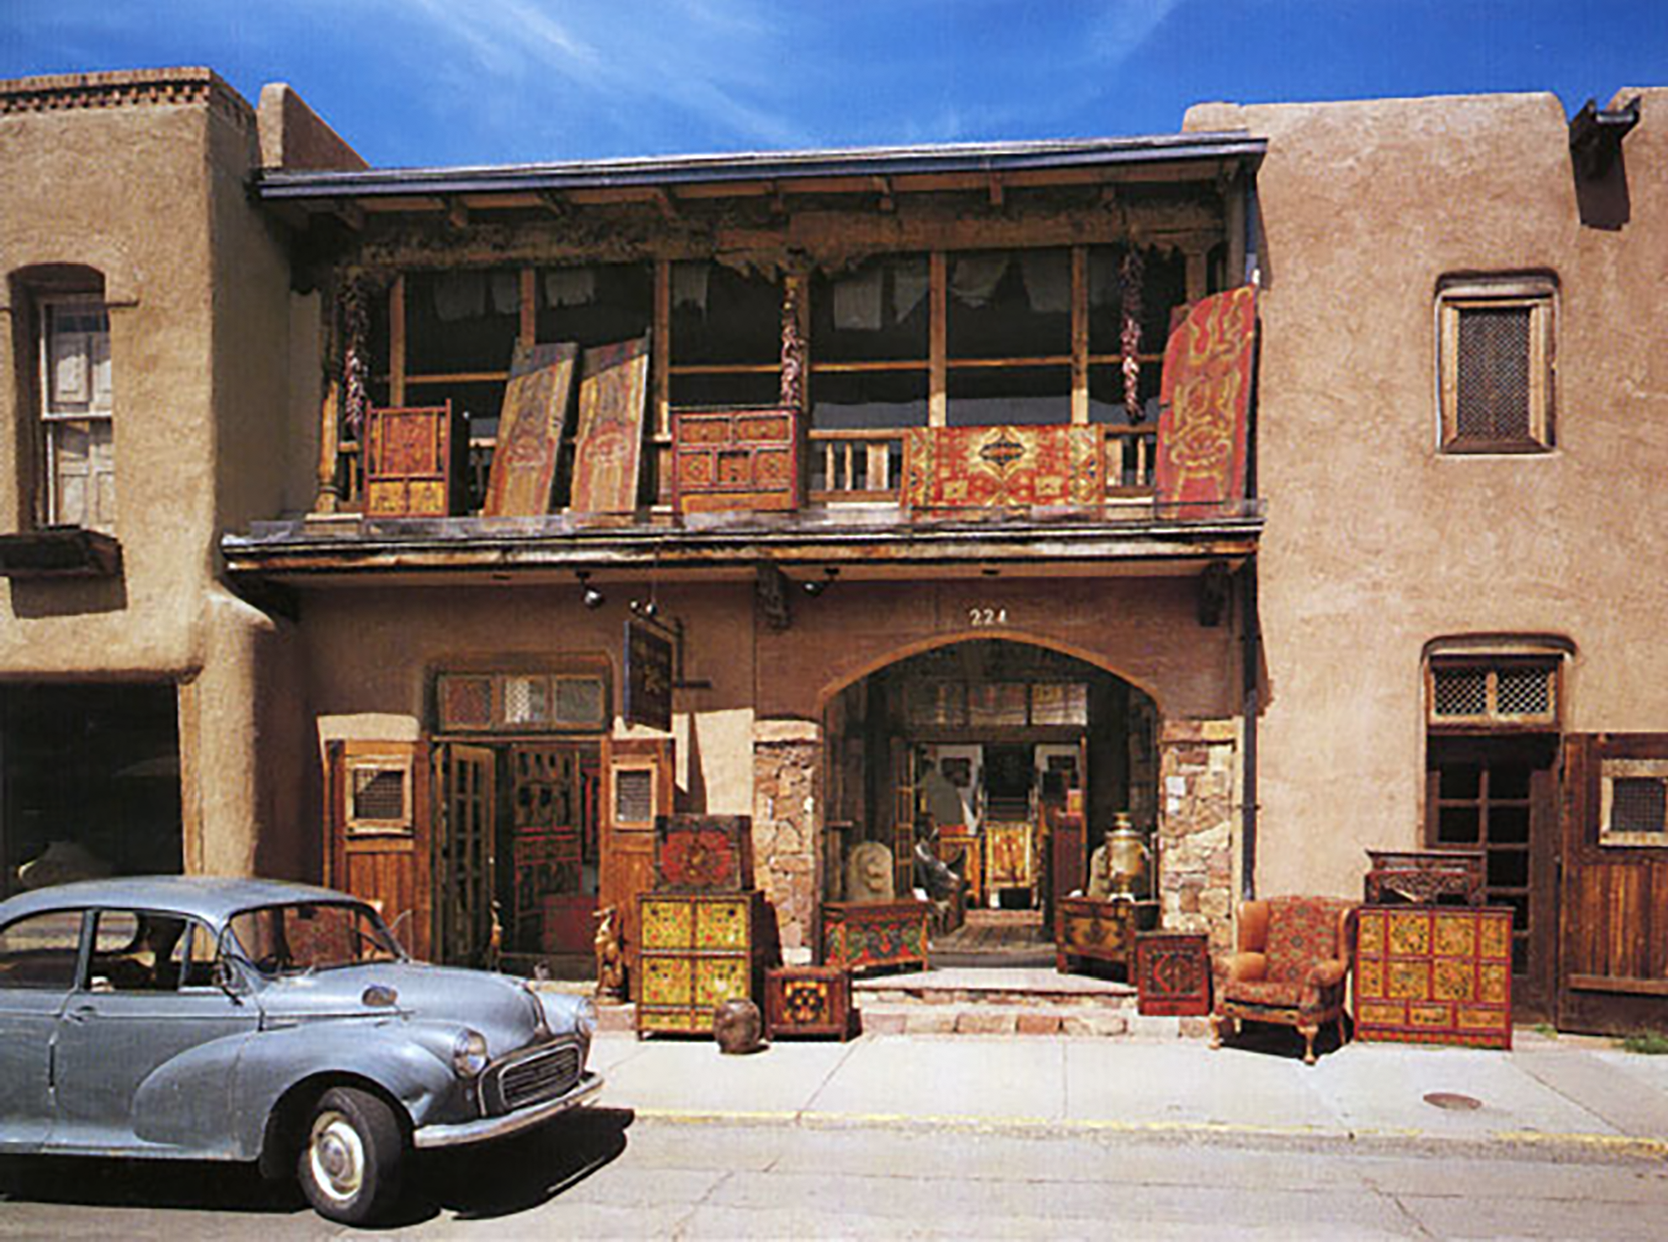 Seret & Sons store front, Santa Fe NM